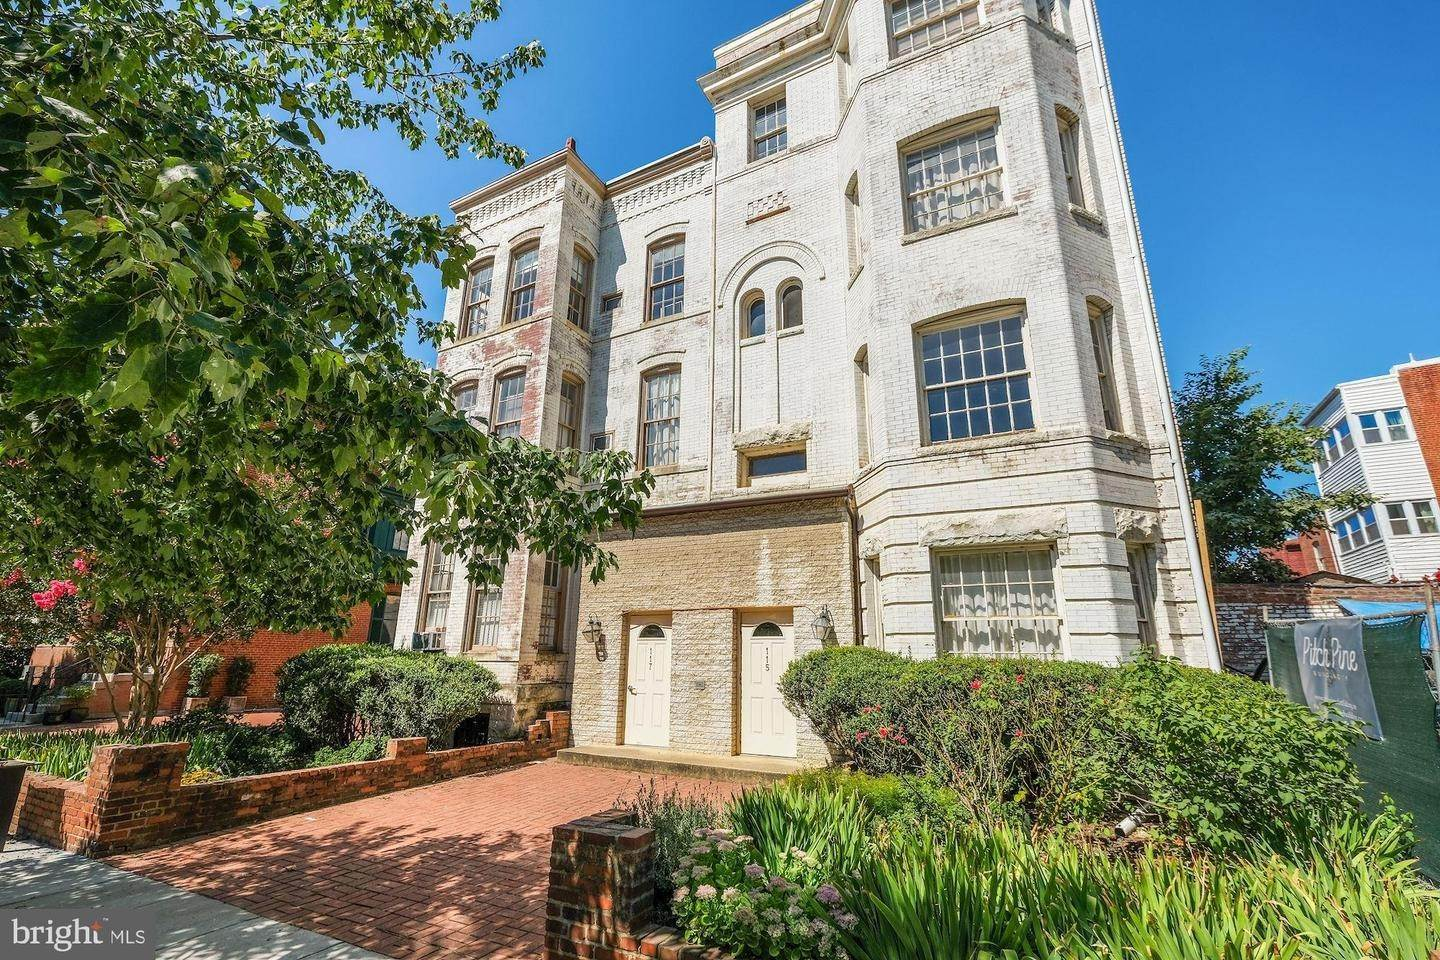 Villa/Townhouse for Sale at Twin/Semi-Detached, Multi-Family - WASHINGTON, DC 117 12TH ST SE Washington, District Of Columbia,20003 United States